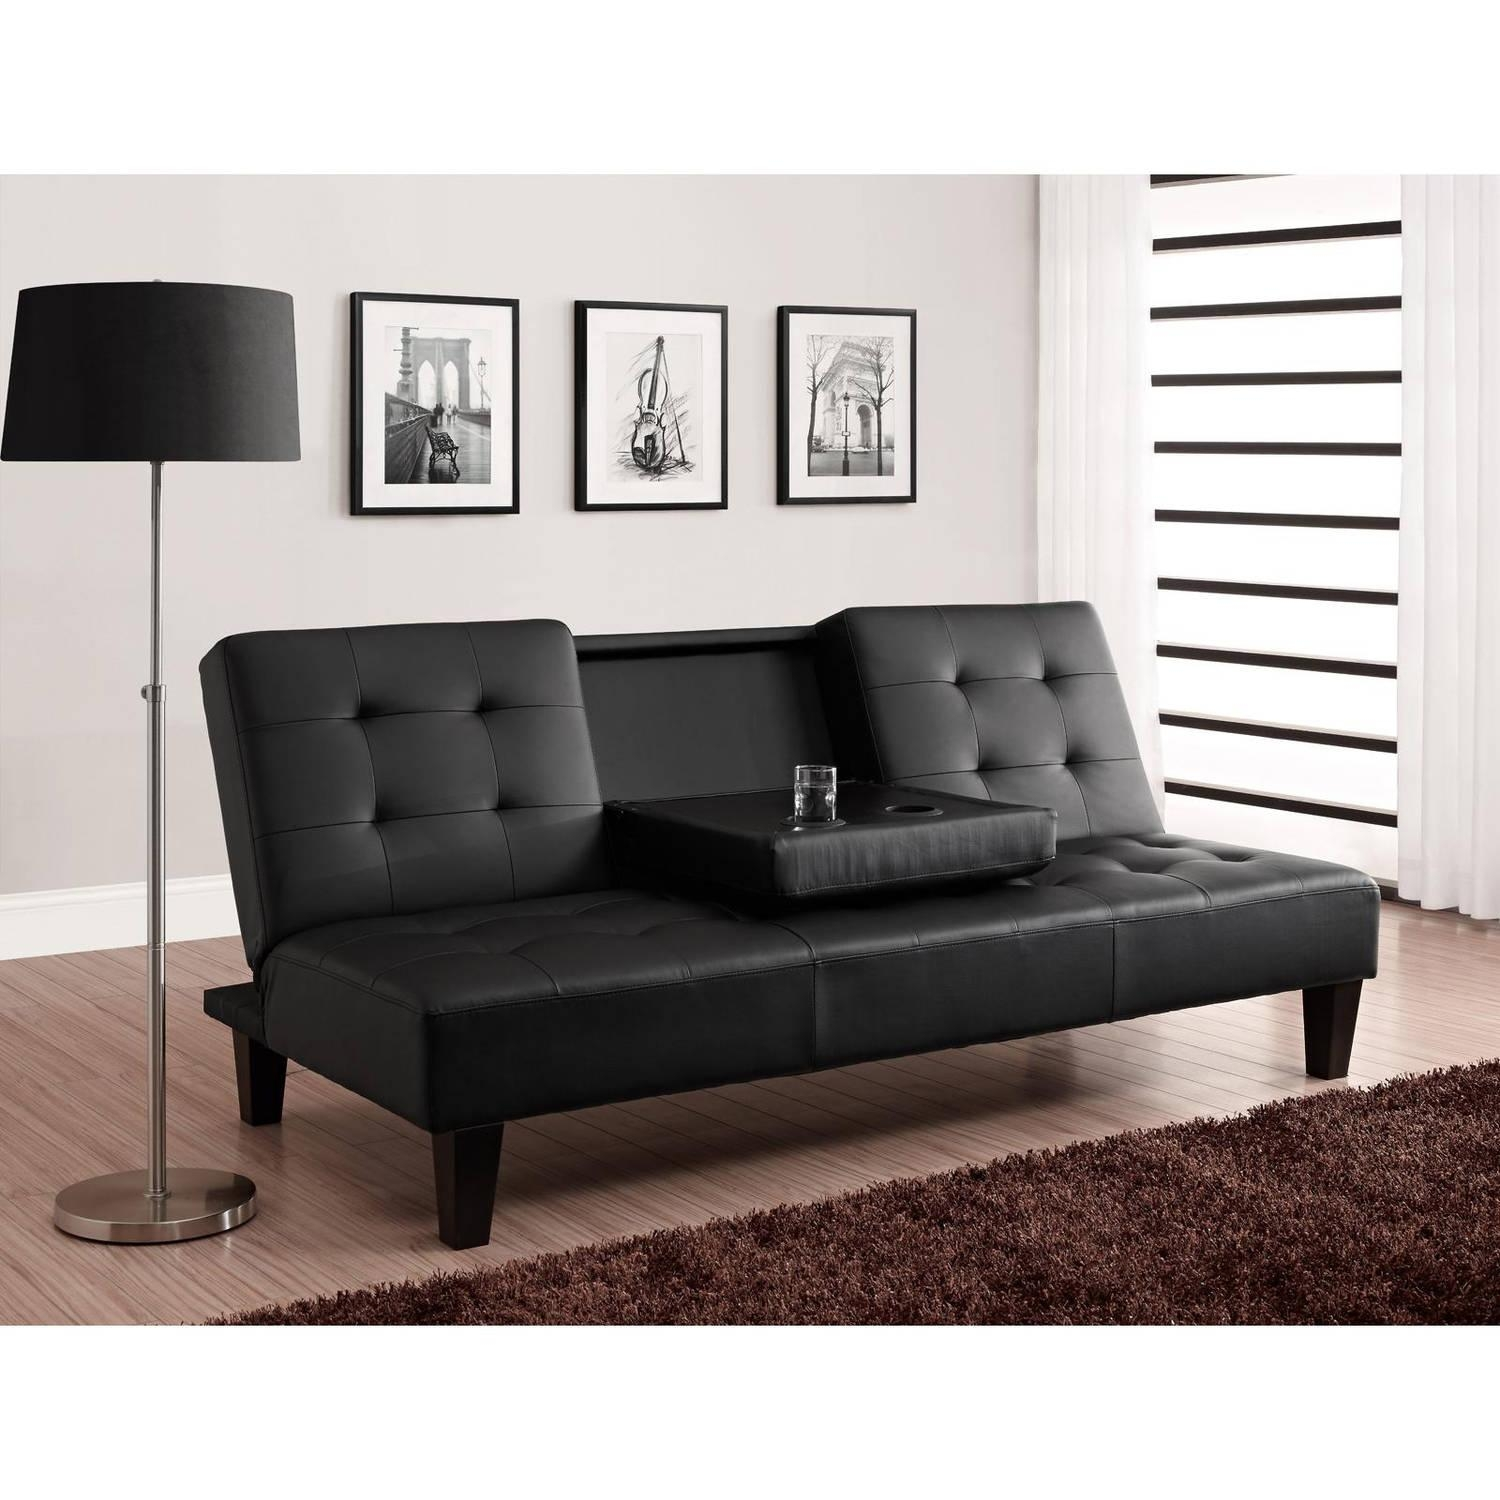 Julia Cupholder Convertible Futon, Multiple Colors - Walmart with regard to Sofas With Drink Holder